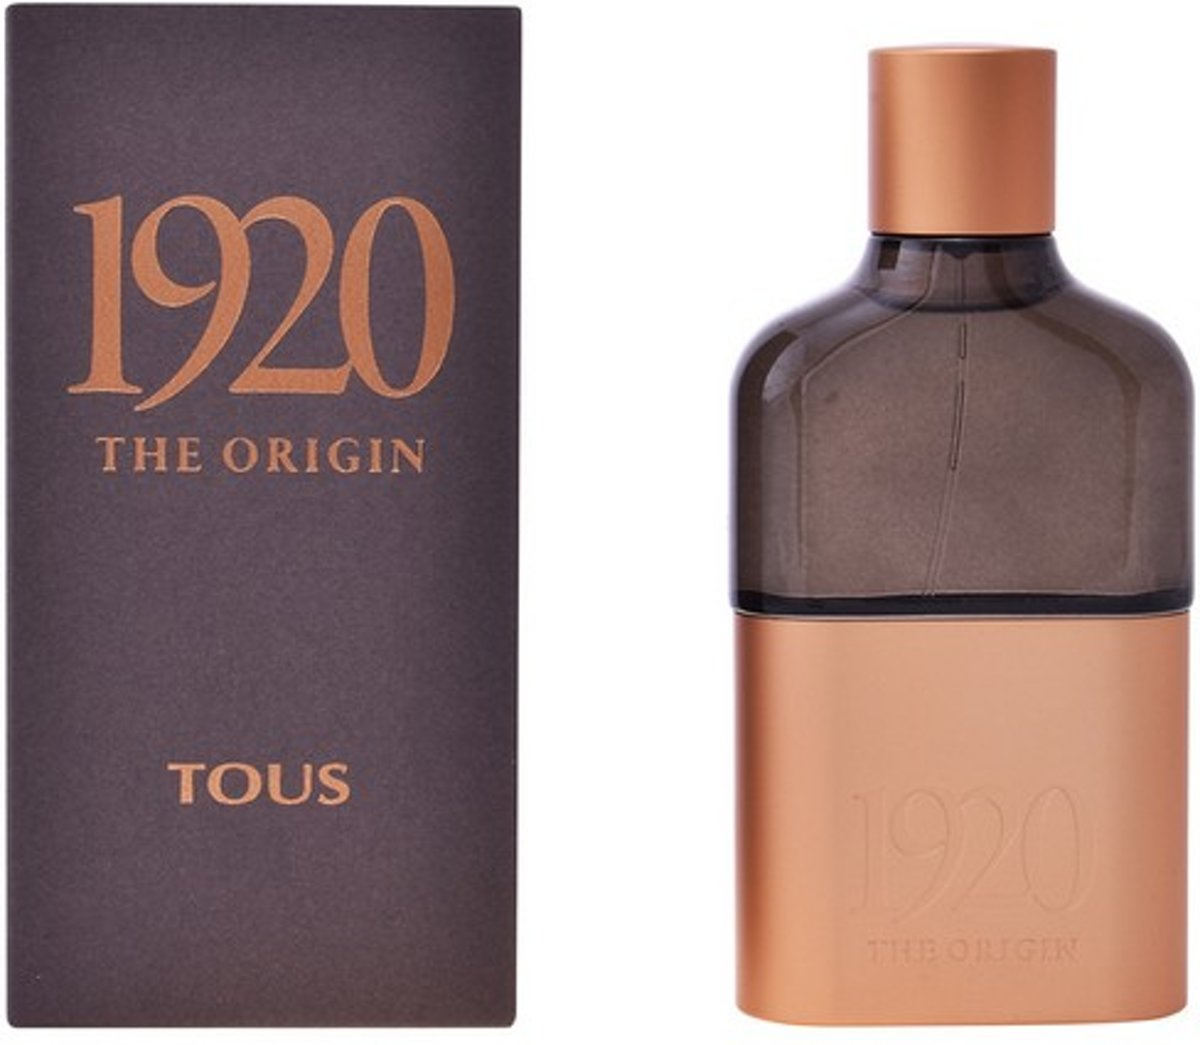 Mens Perfume 1920 The Origin Tous EDP